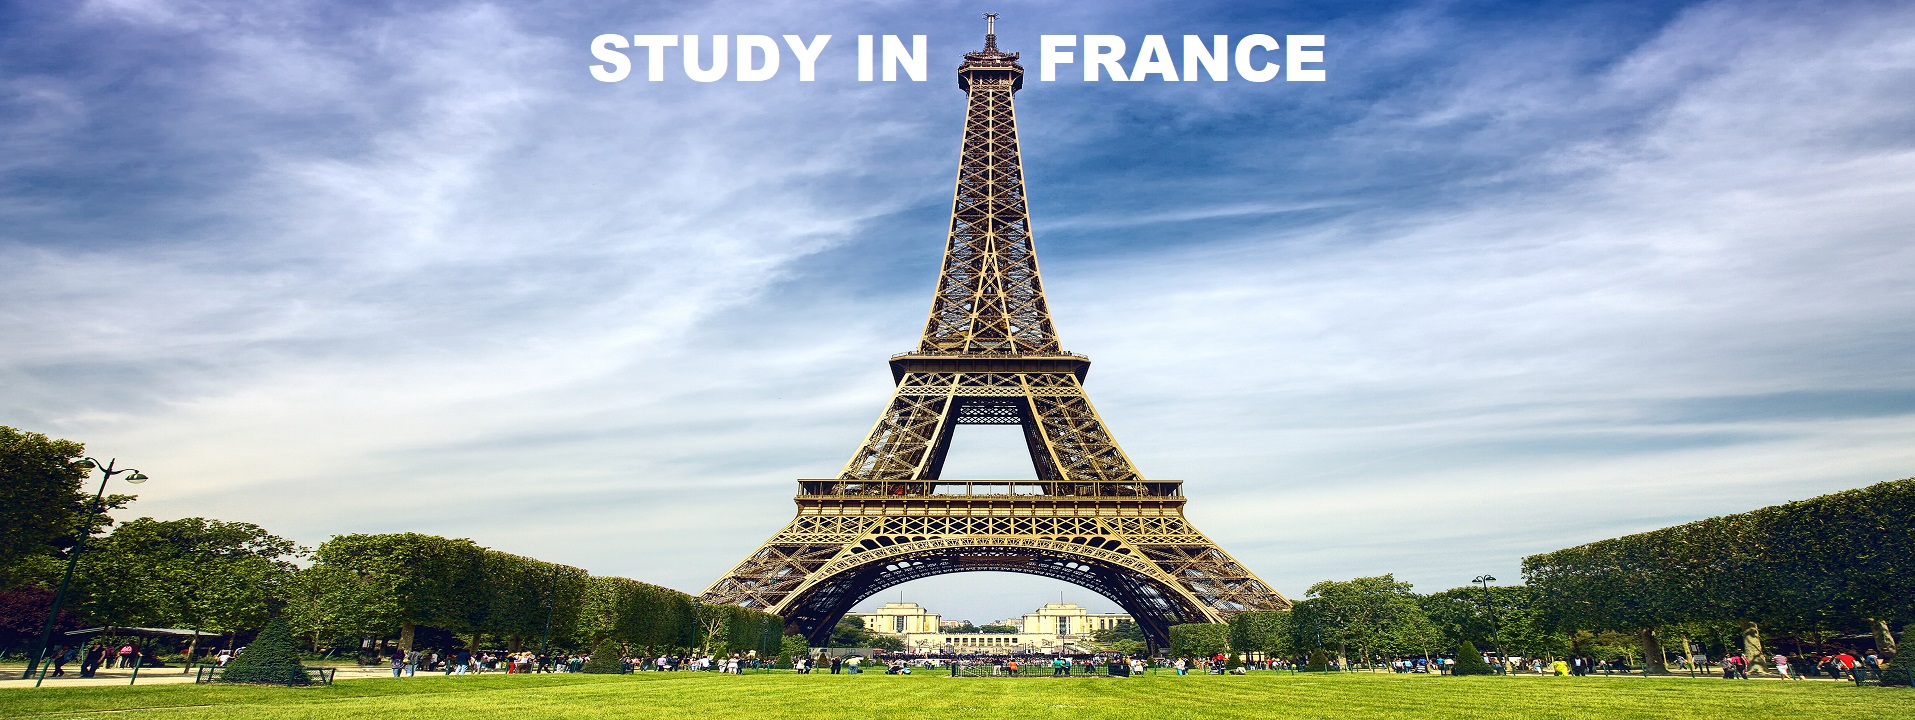 France student visa consultants Delhi | Education consultant France | Study France Consulting Delhi | study France requirements | educational opportunities France | Campus France Studying in France | France Study Guide for International Students | students interested in studying in France | Abroad Education Consultants for France in India | Best Courses in English in France